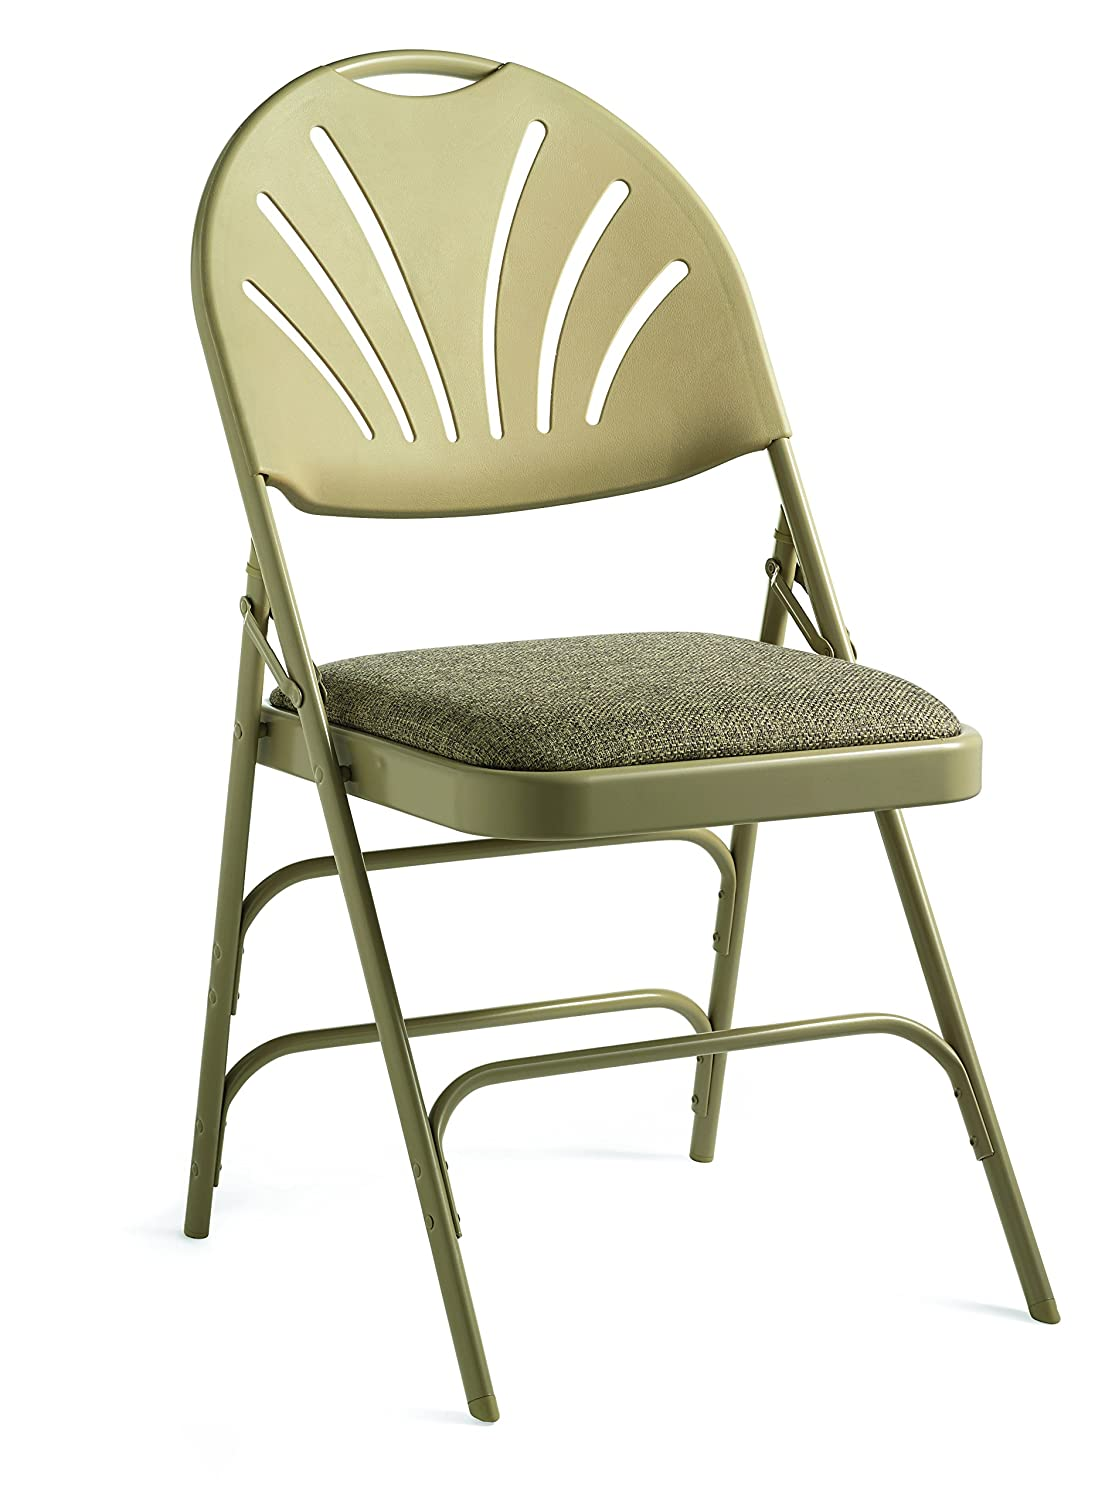 Astonishing Samsonite Xl Series Folding Chair 4 Pack Neutral Beige Commercial Grade Fanback Design Padded Steel Fabric Seat Theyellowbook Wood Chair Design Ideas Theyellowbookinfo